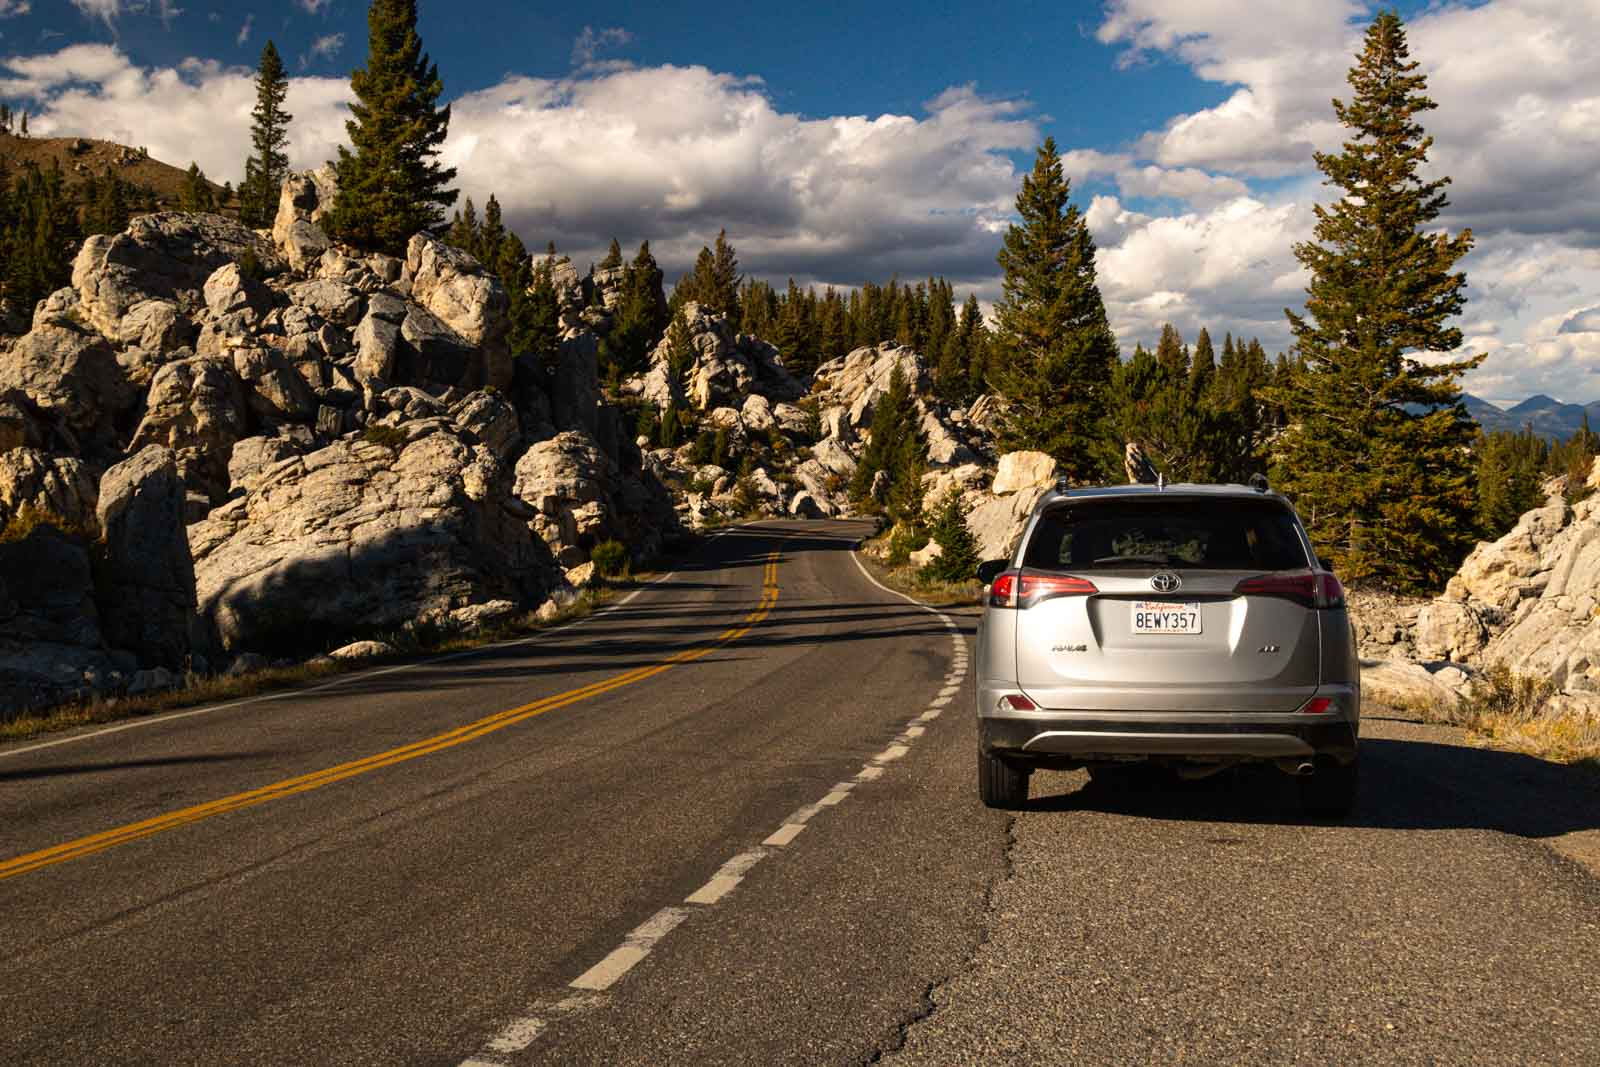 Things to do in Yellowstone include pulling your car over on the side of the road to admire the scenery